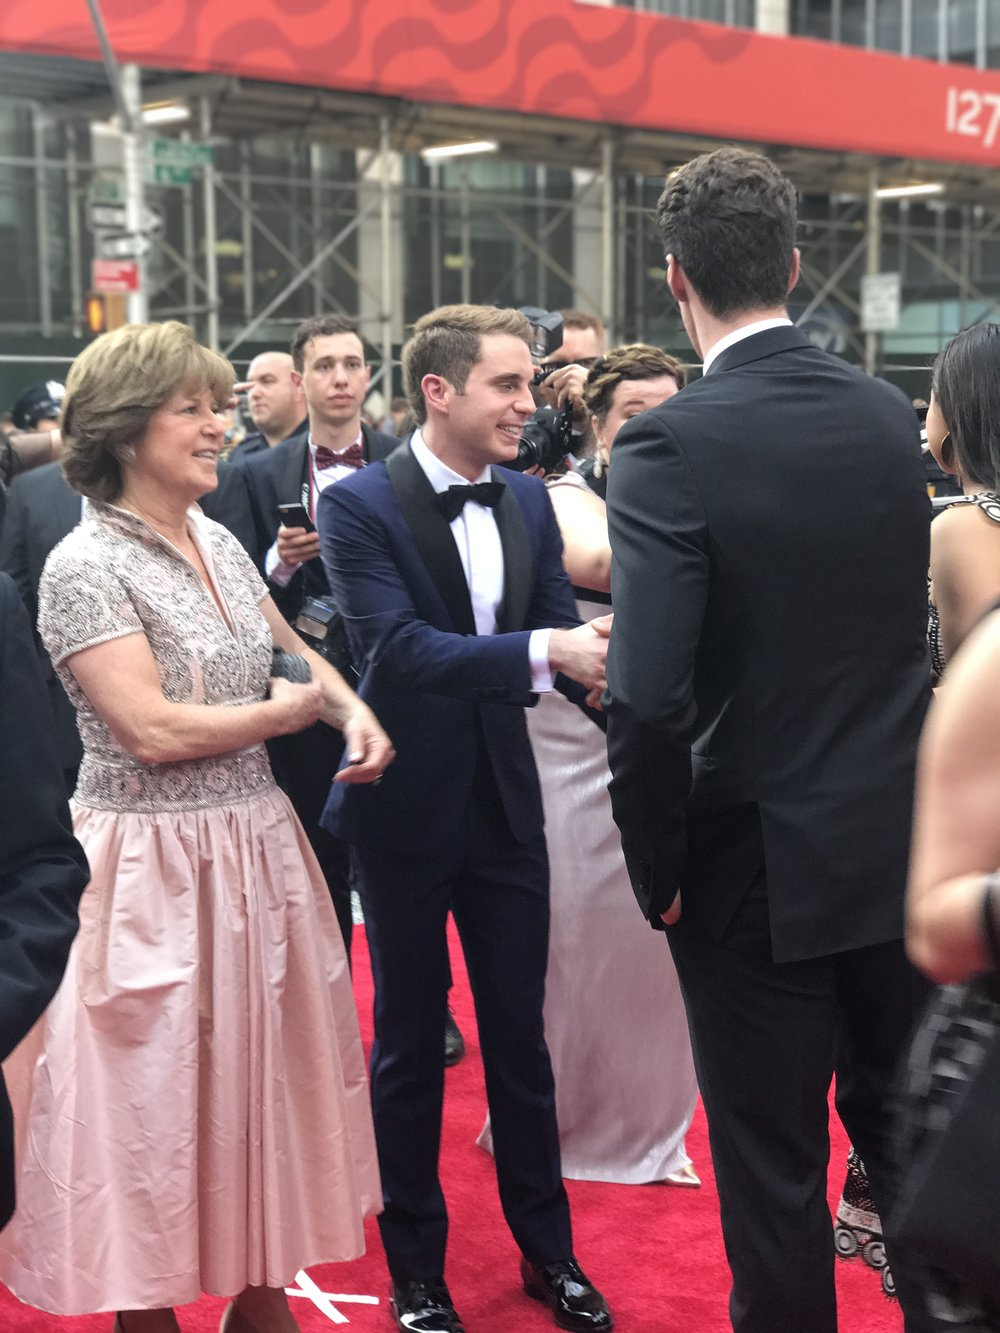 Dear Evan Hansen 's Ben Platt and his mom arrive on the red carpet.